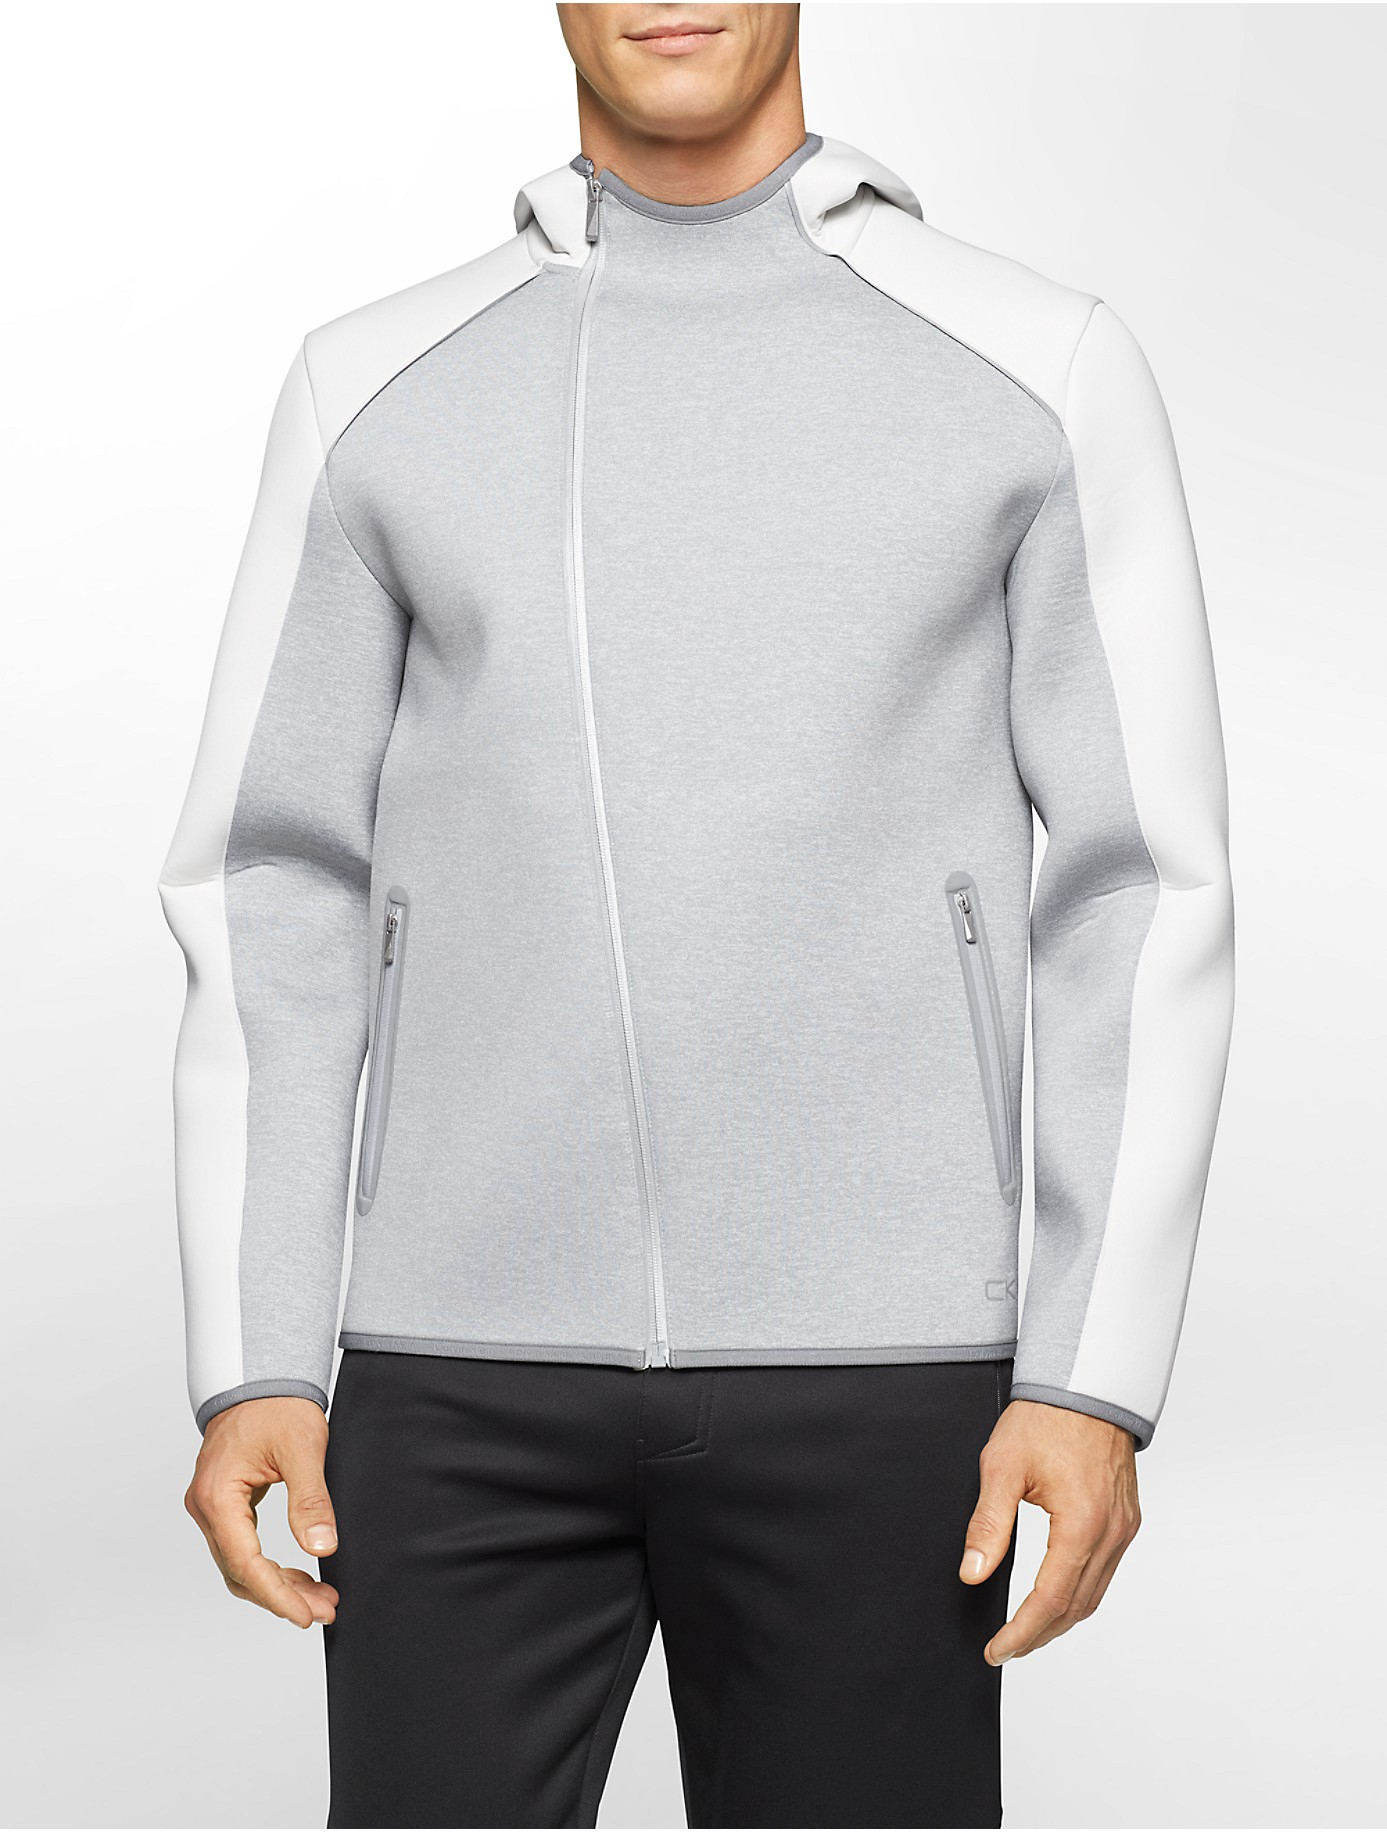 calvin klein performance colorblock asymmetrical zip hoodie in gray for men lyst. Black Bedroom Furniture Sets. Home Design Ideas